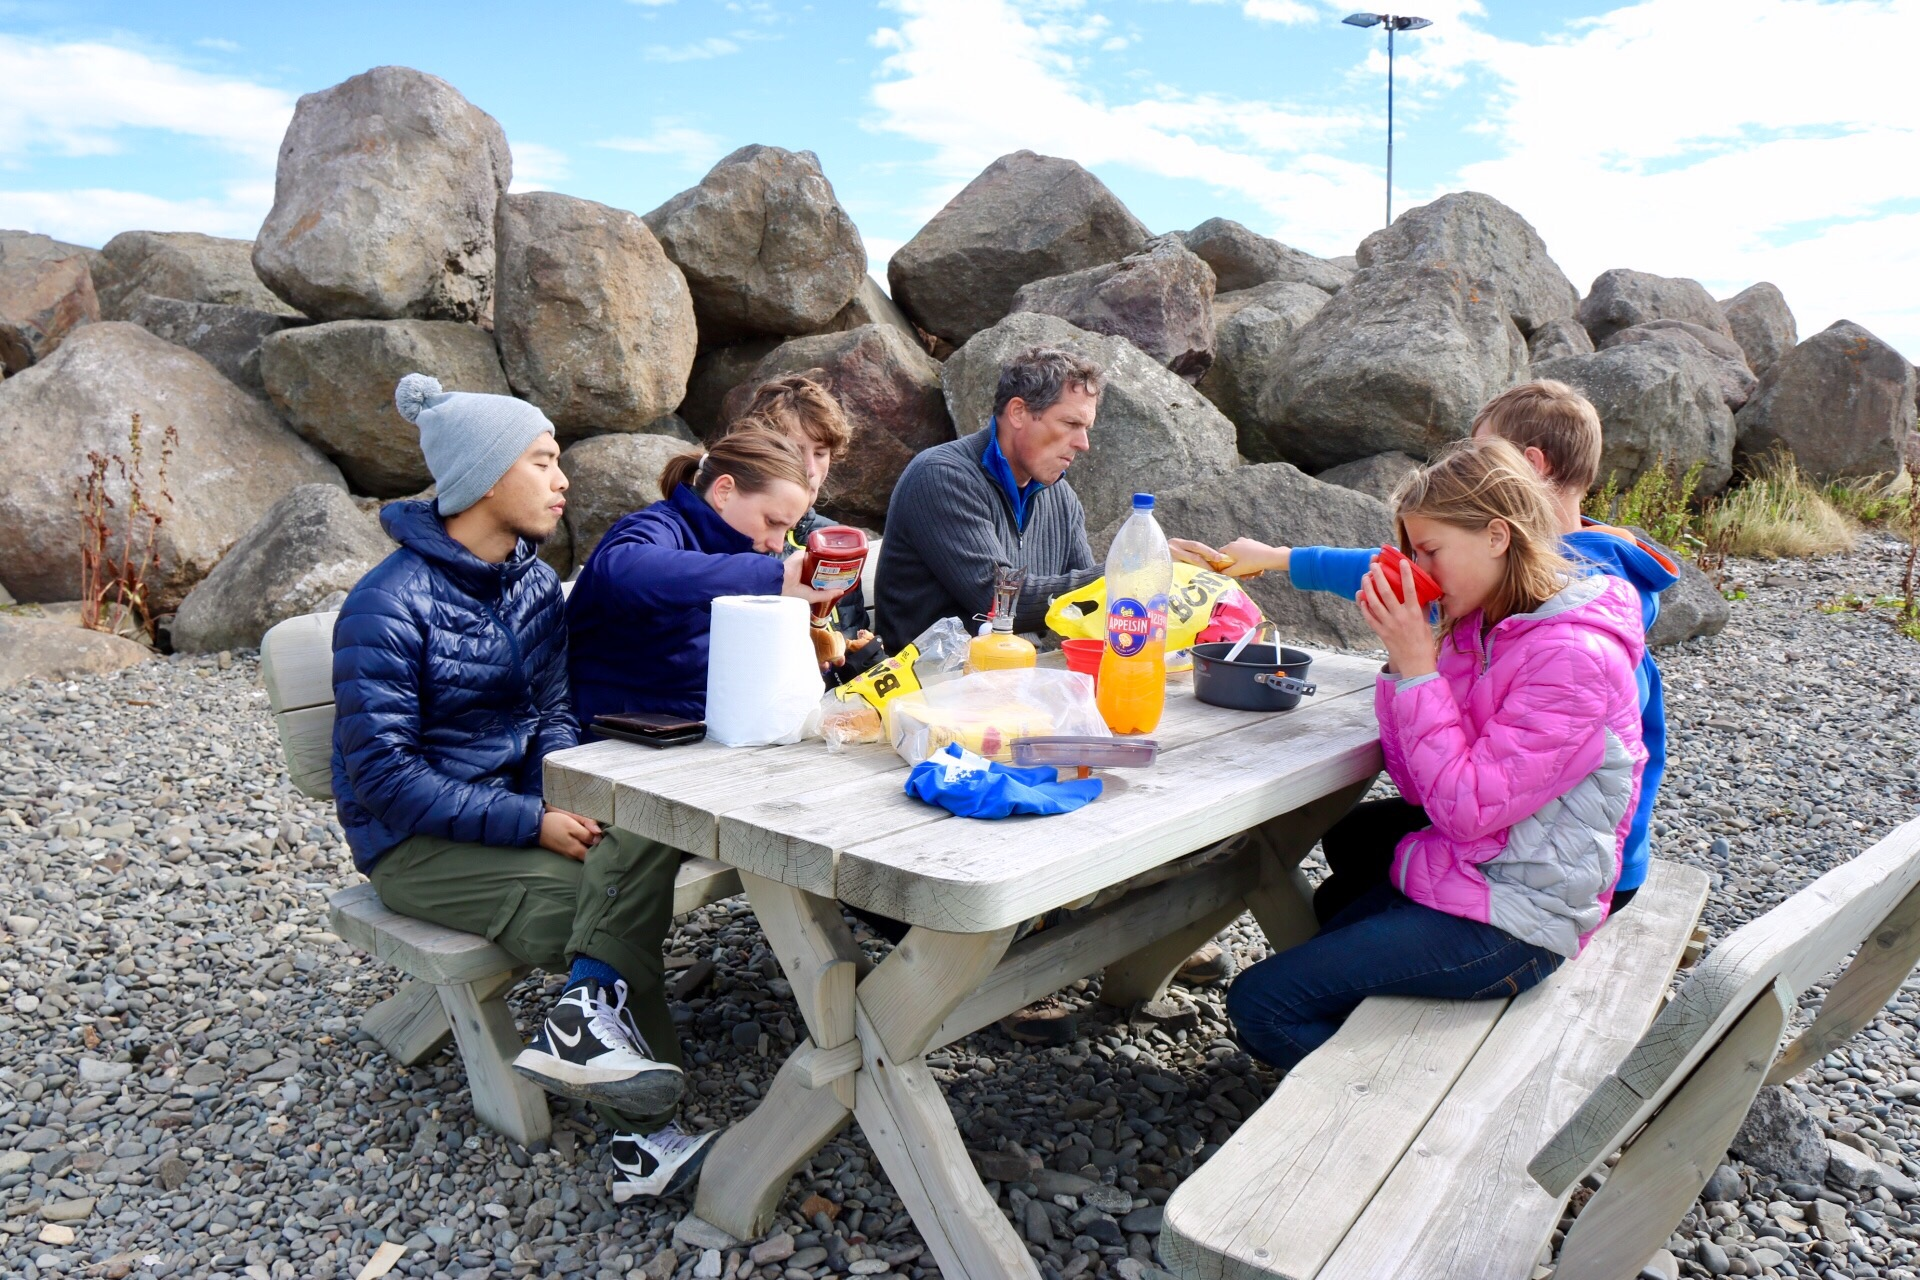 Picnic in Iceland